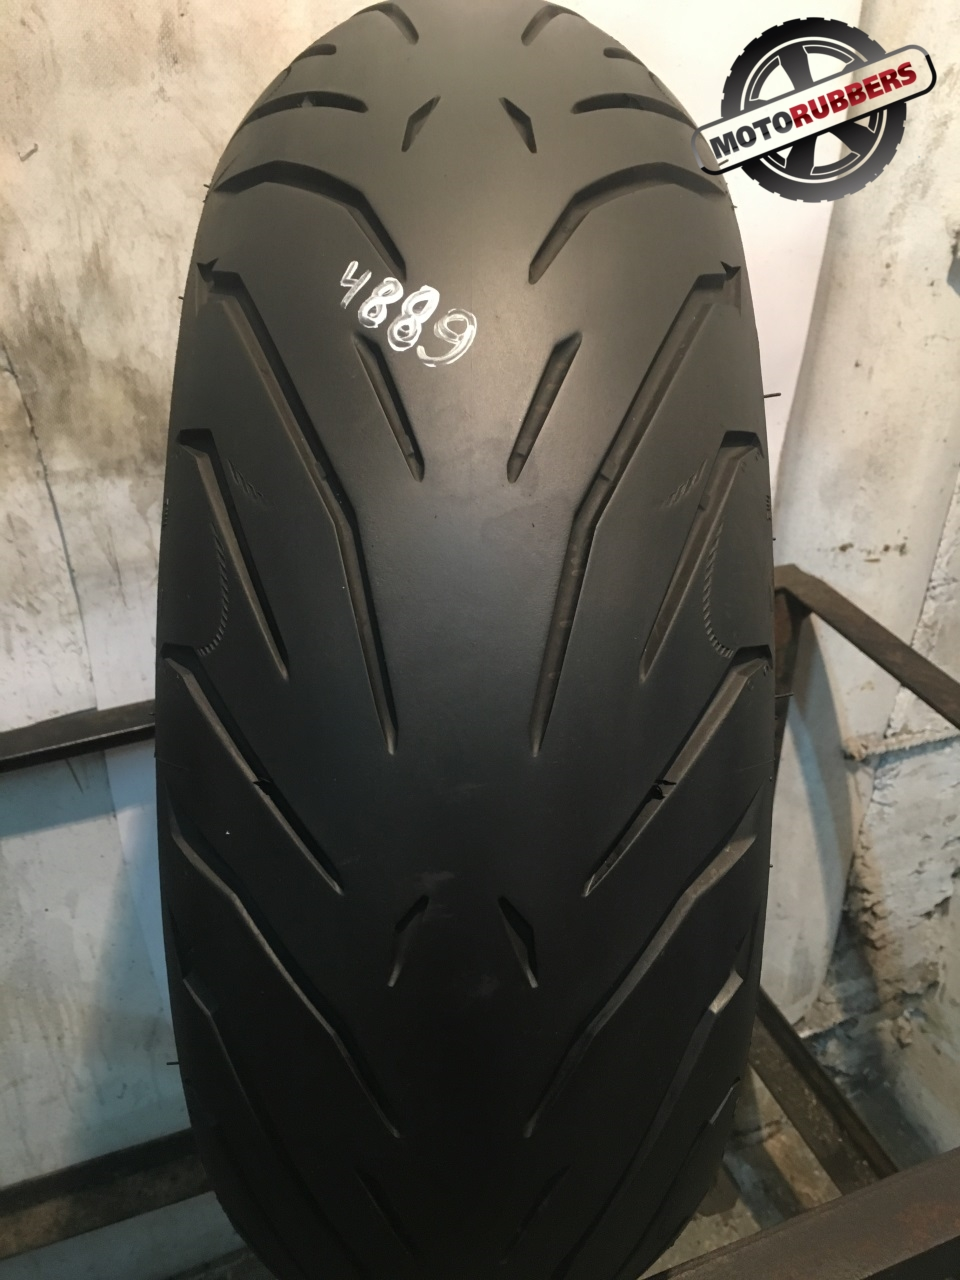 180/55 R17 Pirelli angel st